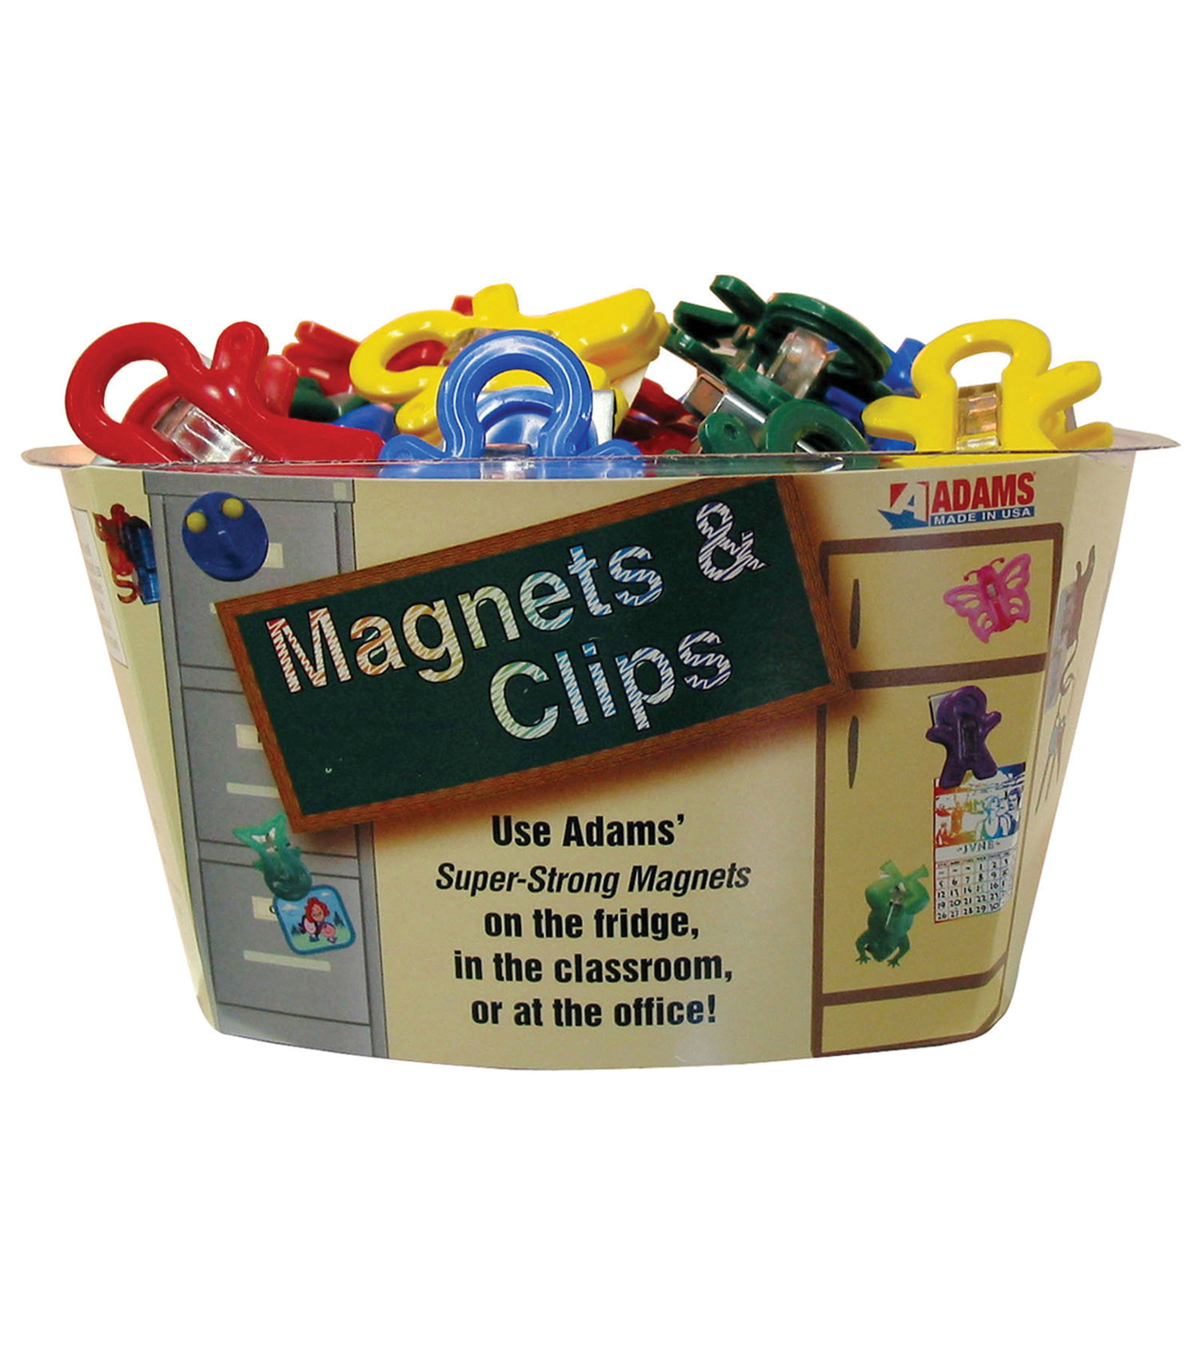 Magnet Man Magnetic Clip, Tub of 40